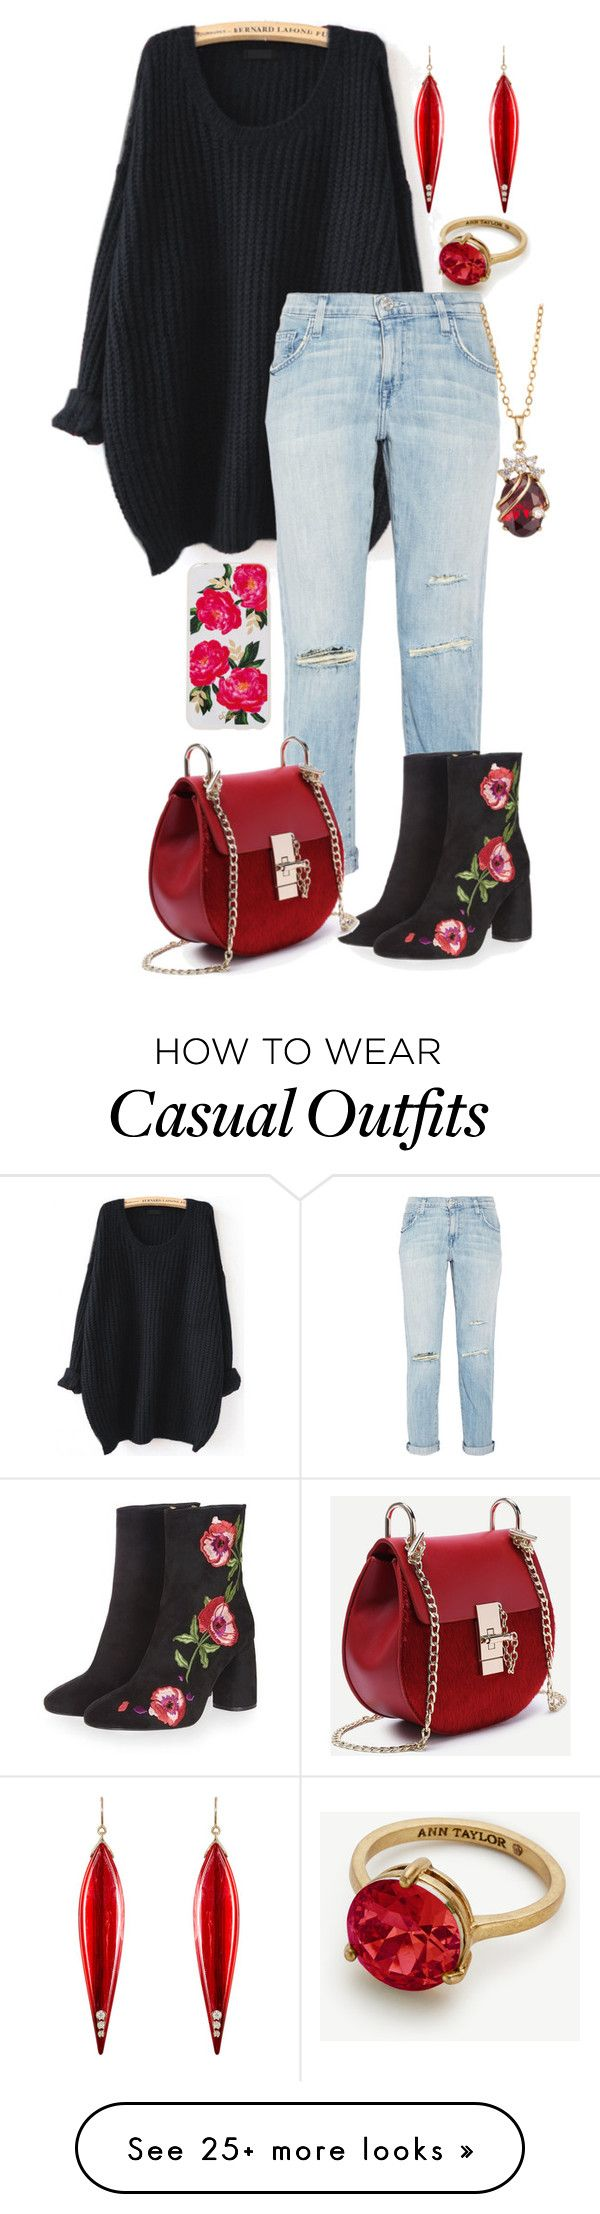 """Casual New Year"" by major-12 on Polyvore featuring Ann Taylor, WithChic, Current/Elliott, Topshop, Sonix and Mark Davis"